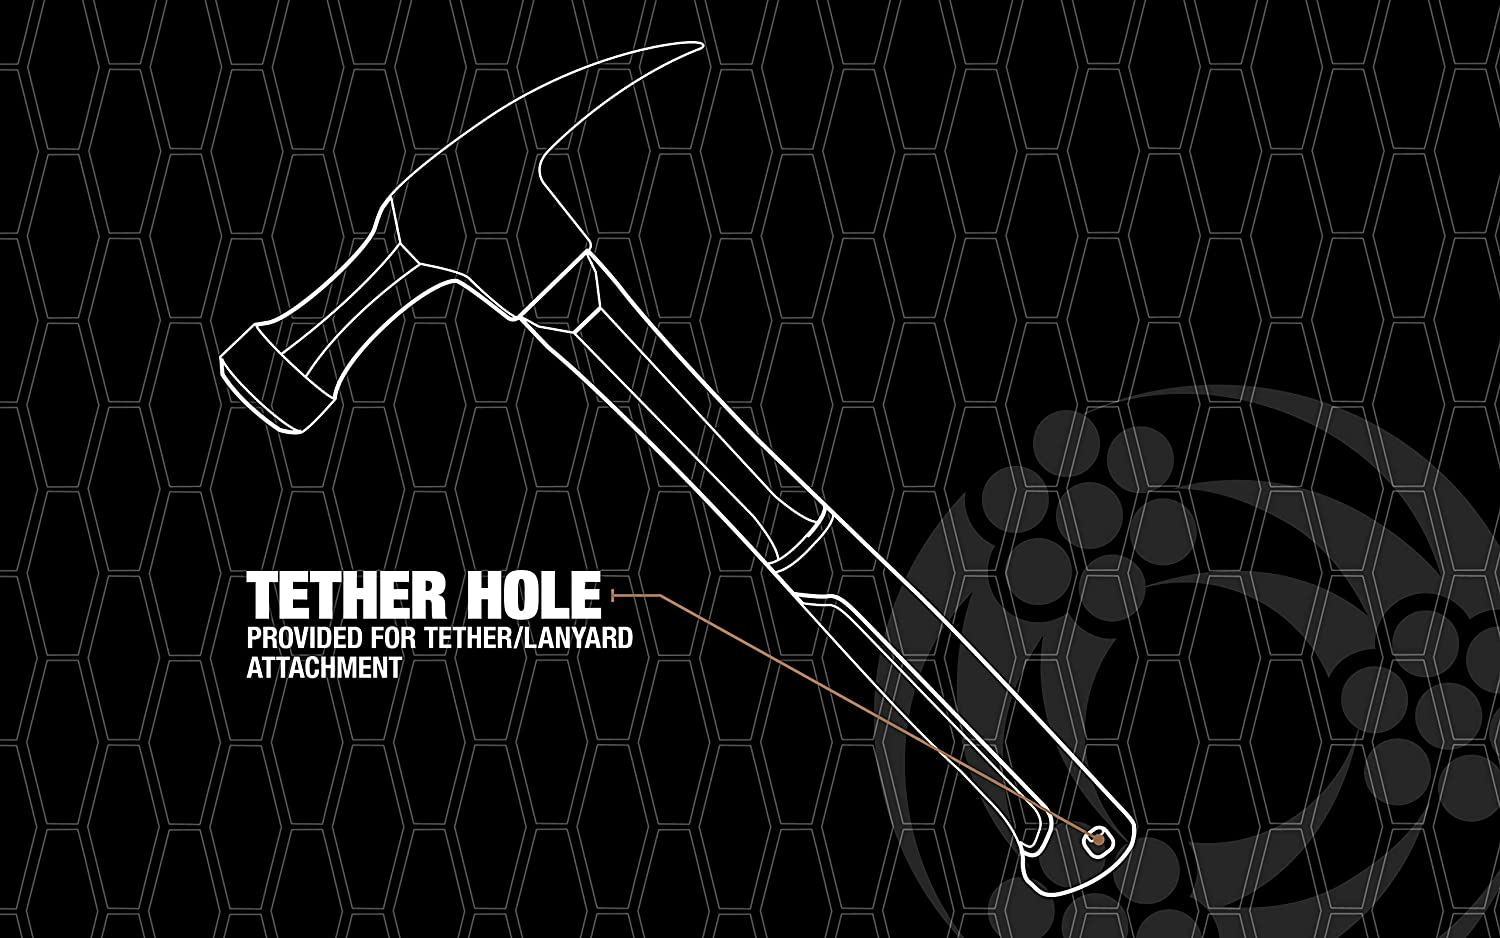 Head With Smooth Face 1.75 lbs. Southwire Bmeh-20 Heavy Duty Electricians Hammer 20 Oz Light Weight Fiberglass Handle Heavy Duty Drop Forged Steel Teather Hole For Saftey